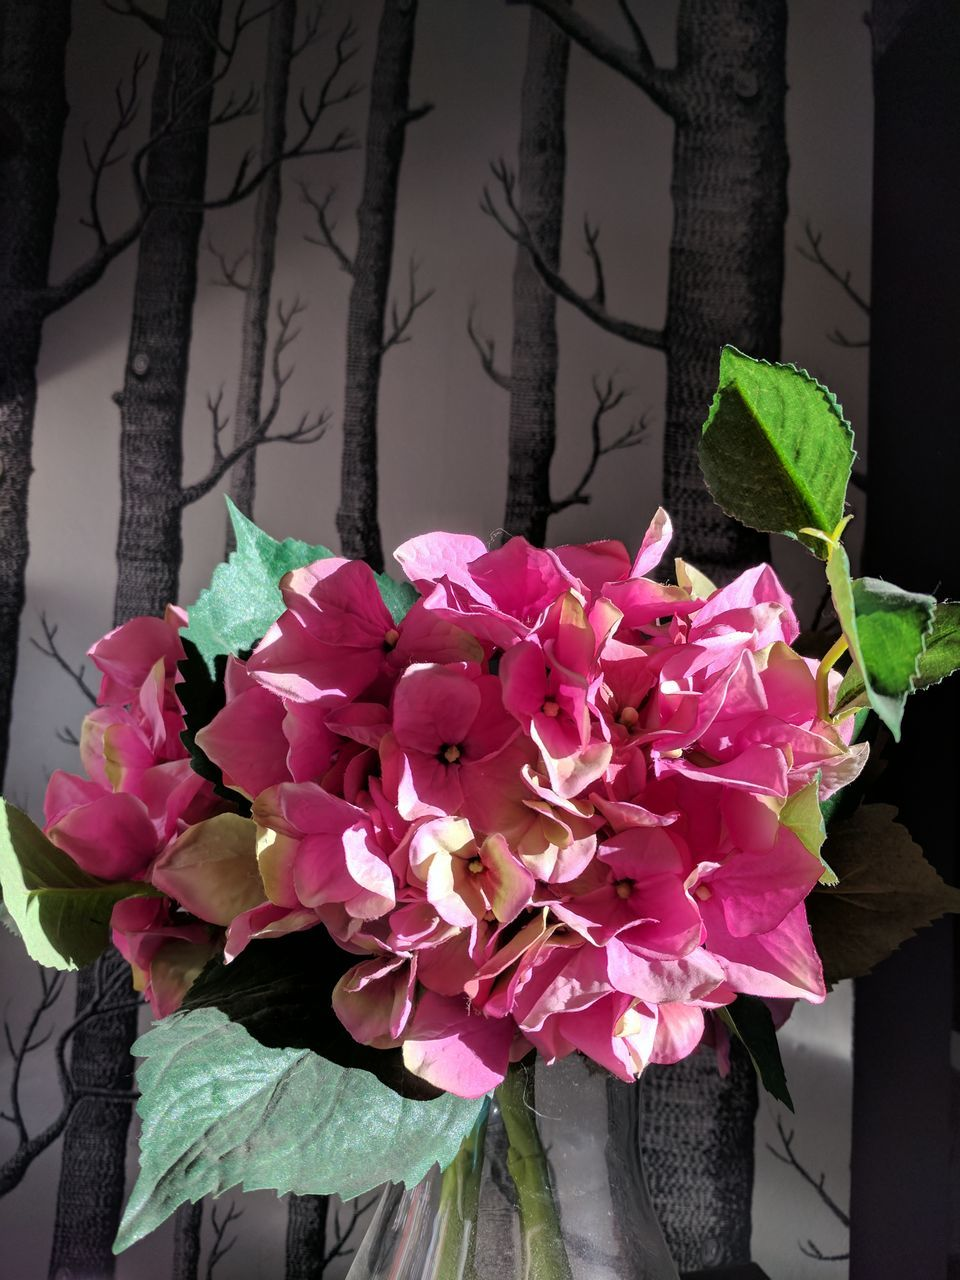 flower, pink color, petal, beauty in nature, nature, leaf, plant, fragility, growth, no people, day, flower head, outdoors, freshness, close-up, bougainvillea, blooming